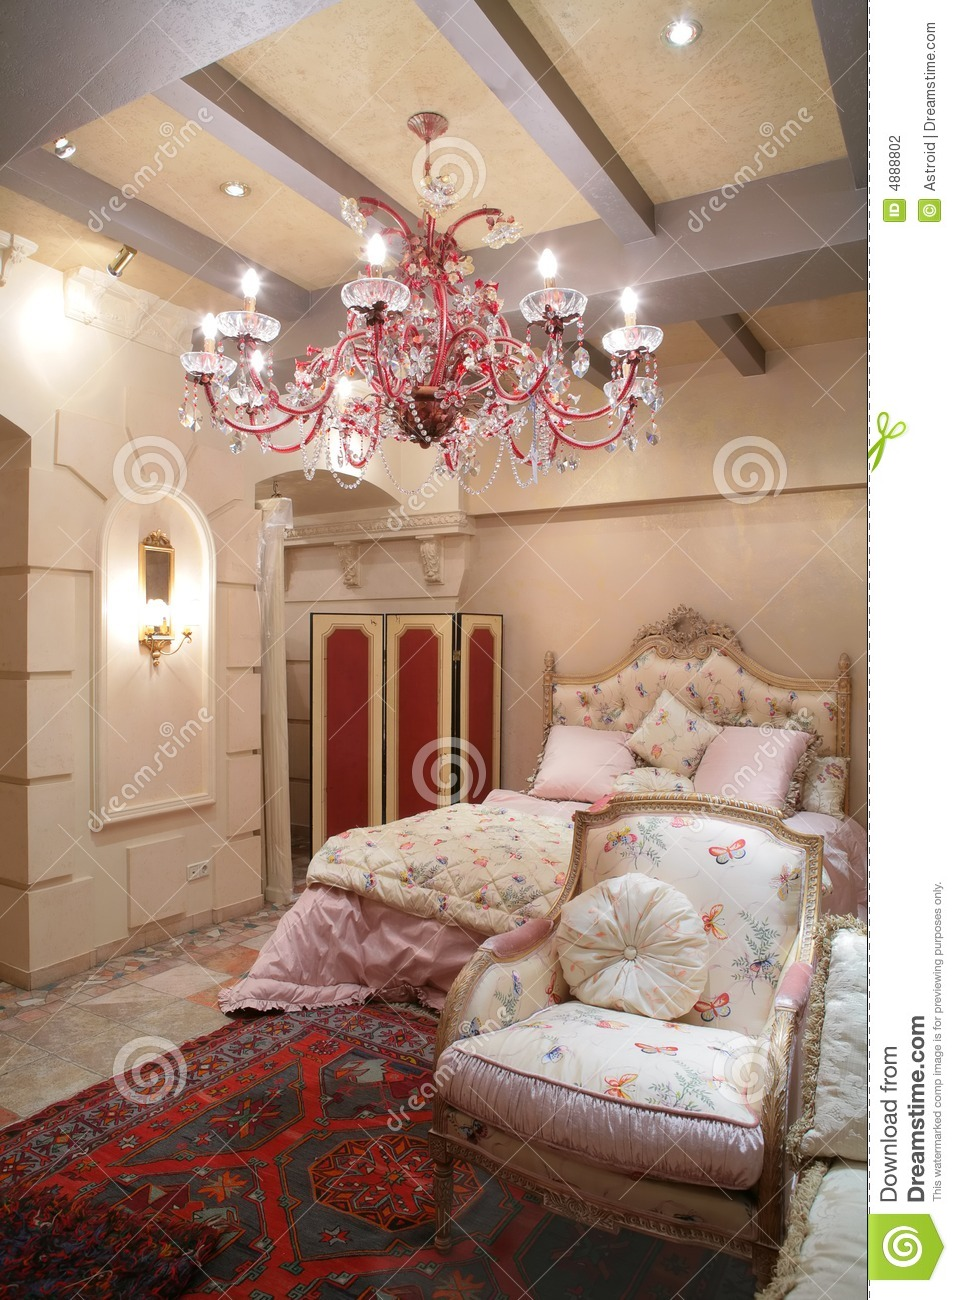 bedroom in vintage style stock photography image 4888802